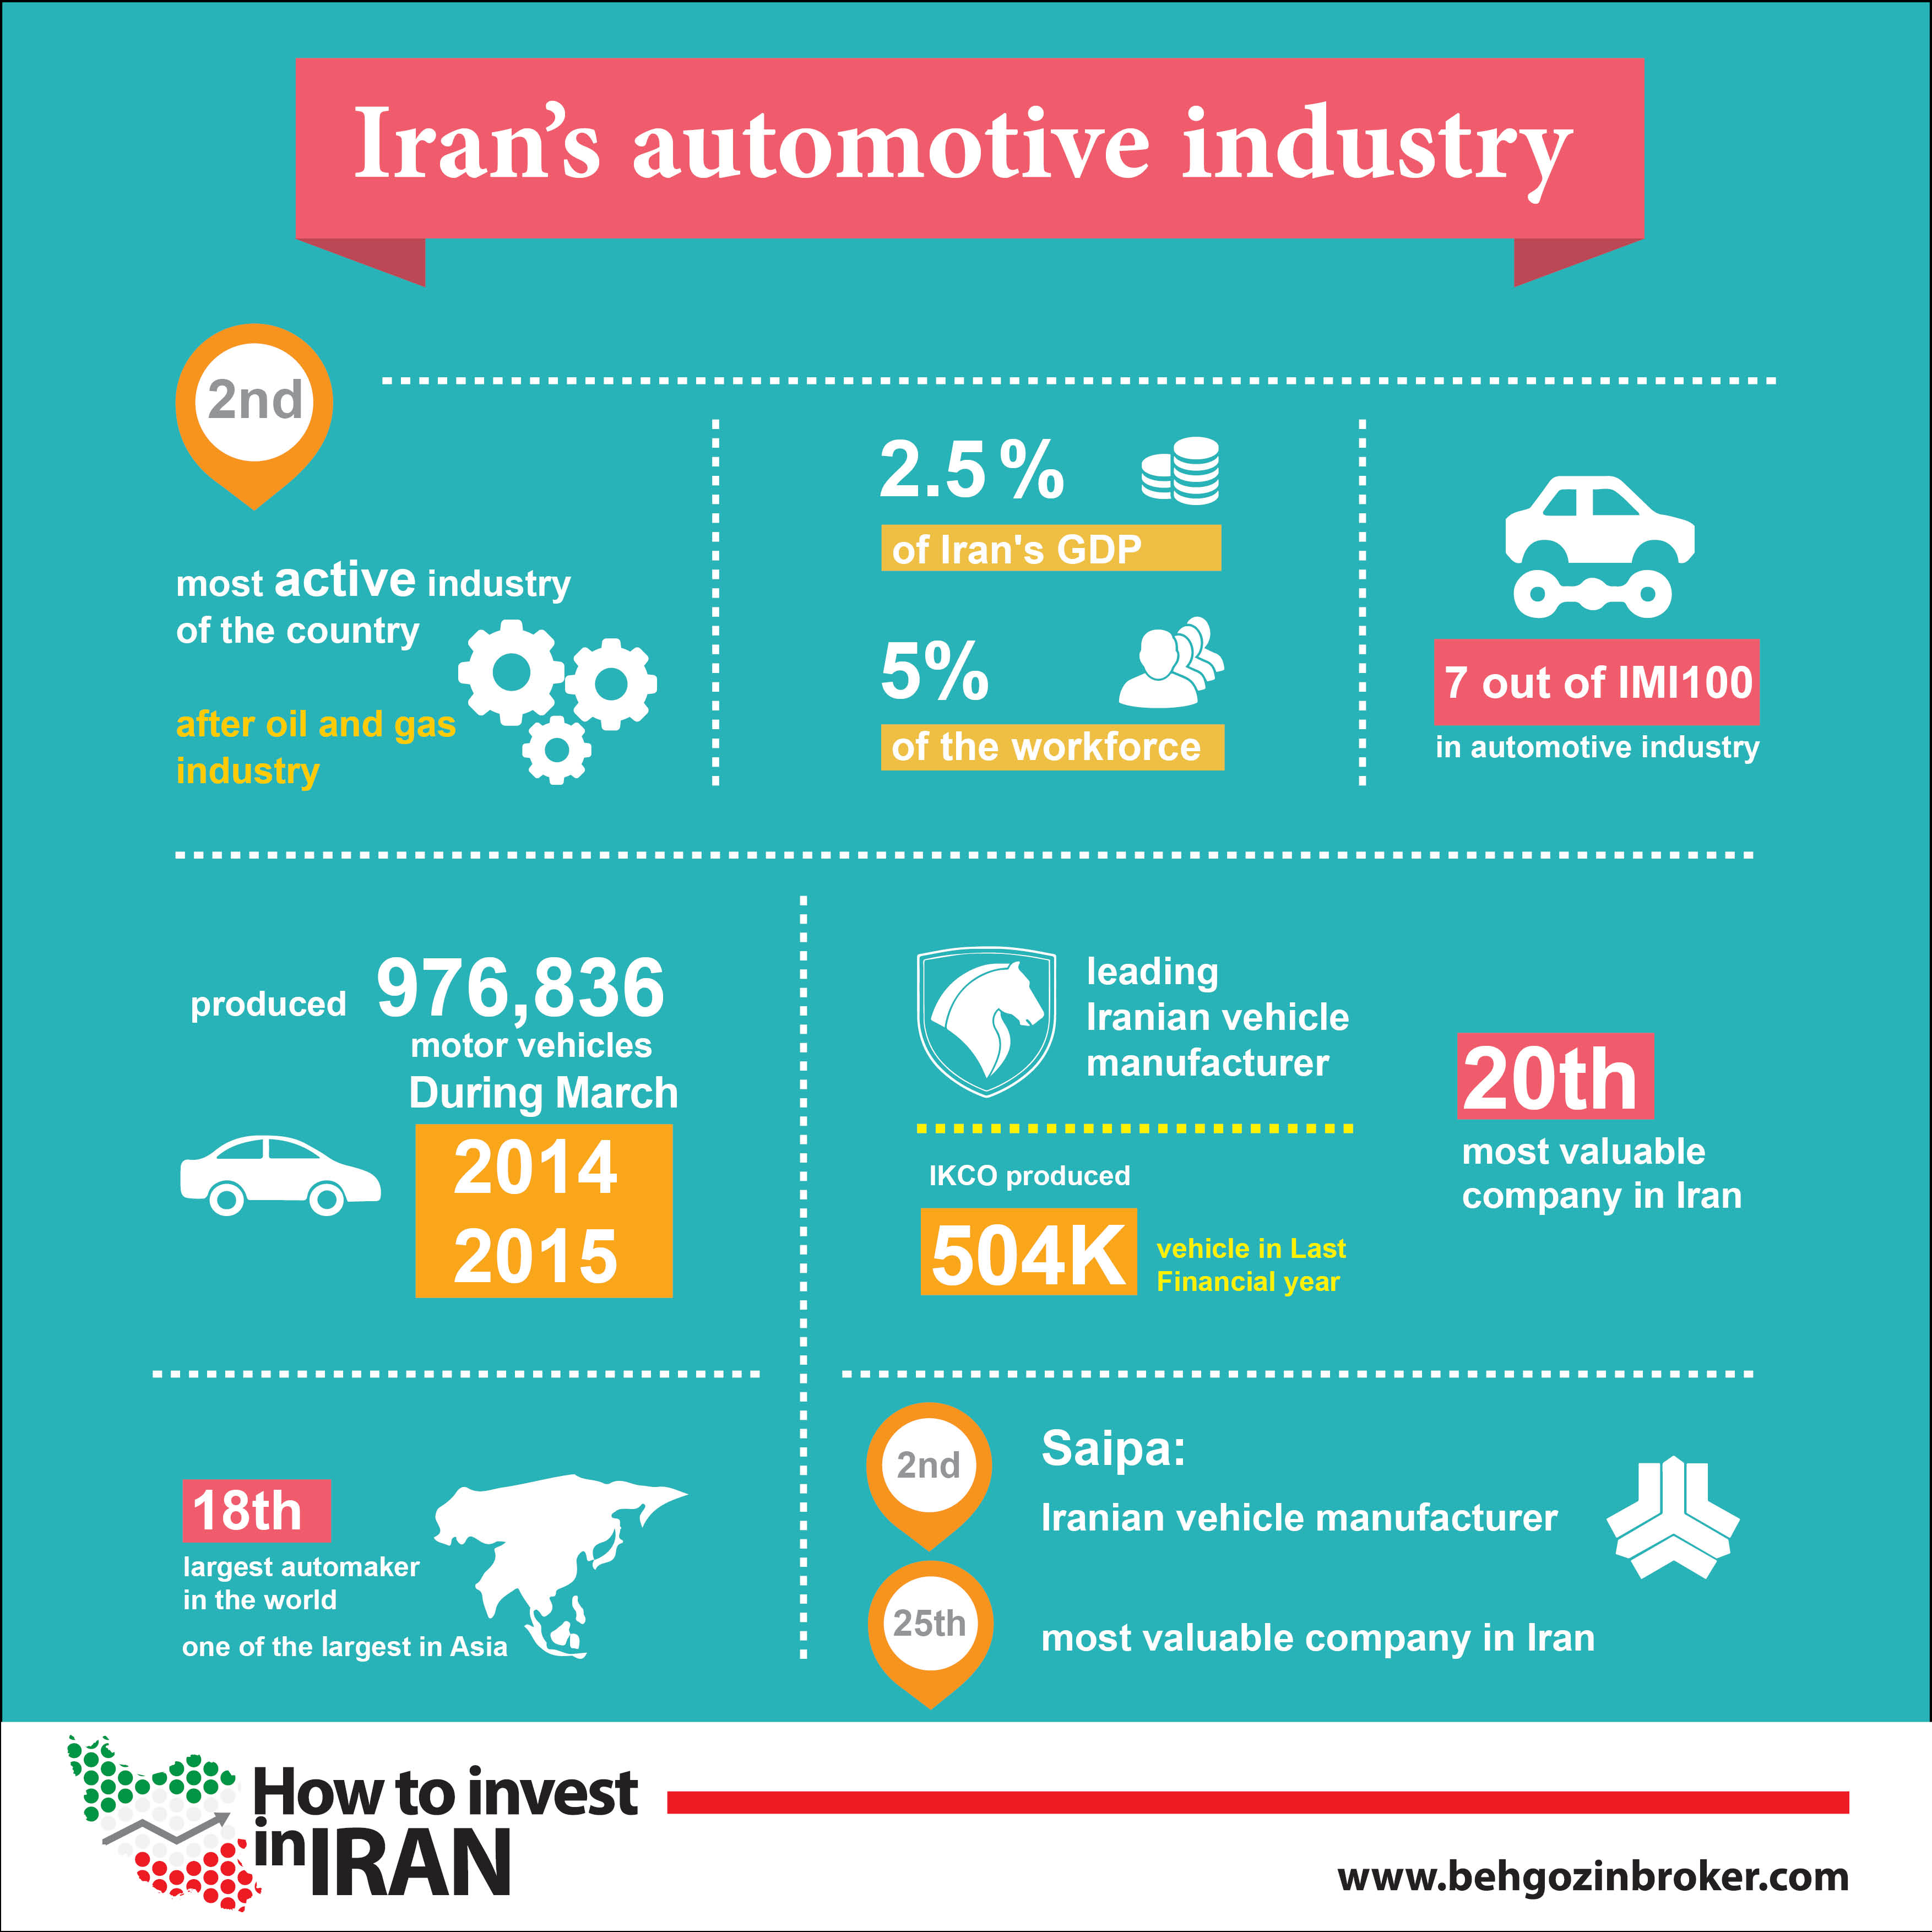 Iran Automative industry